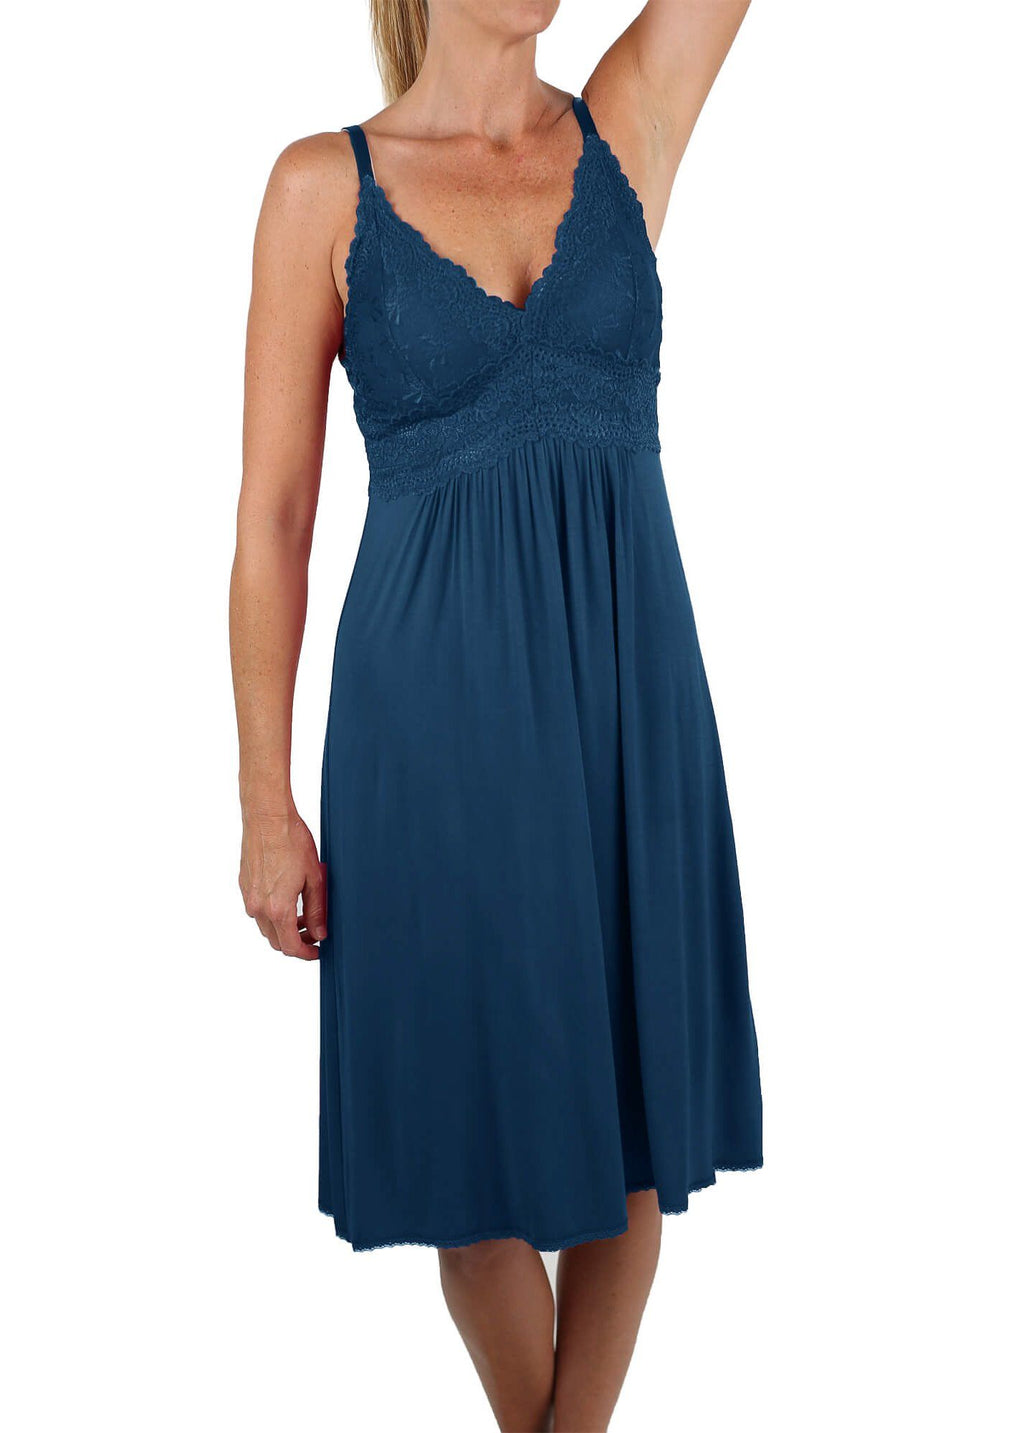 Bliss Knit Nightgown - Cadet Blue Mystique Intimates